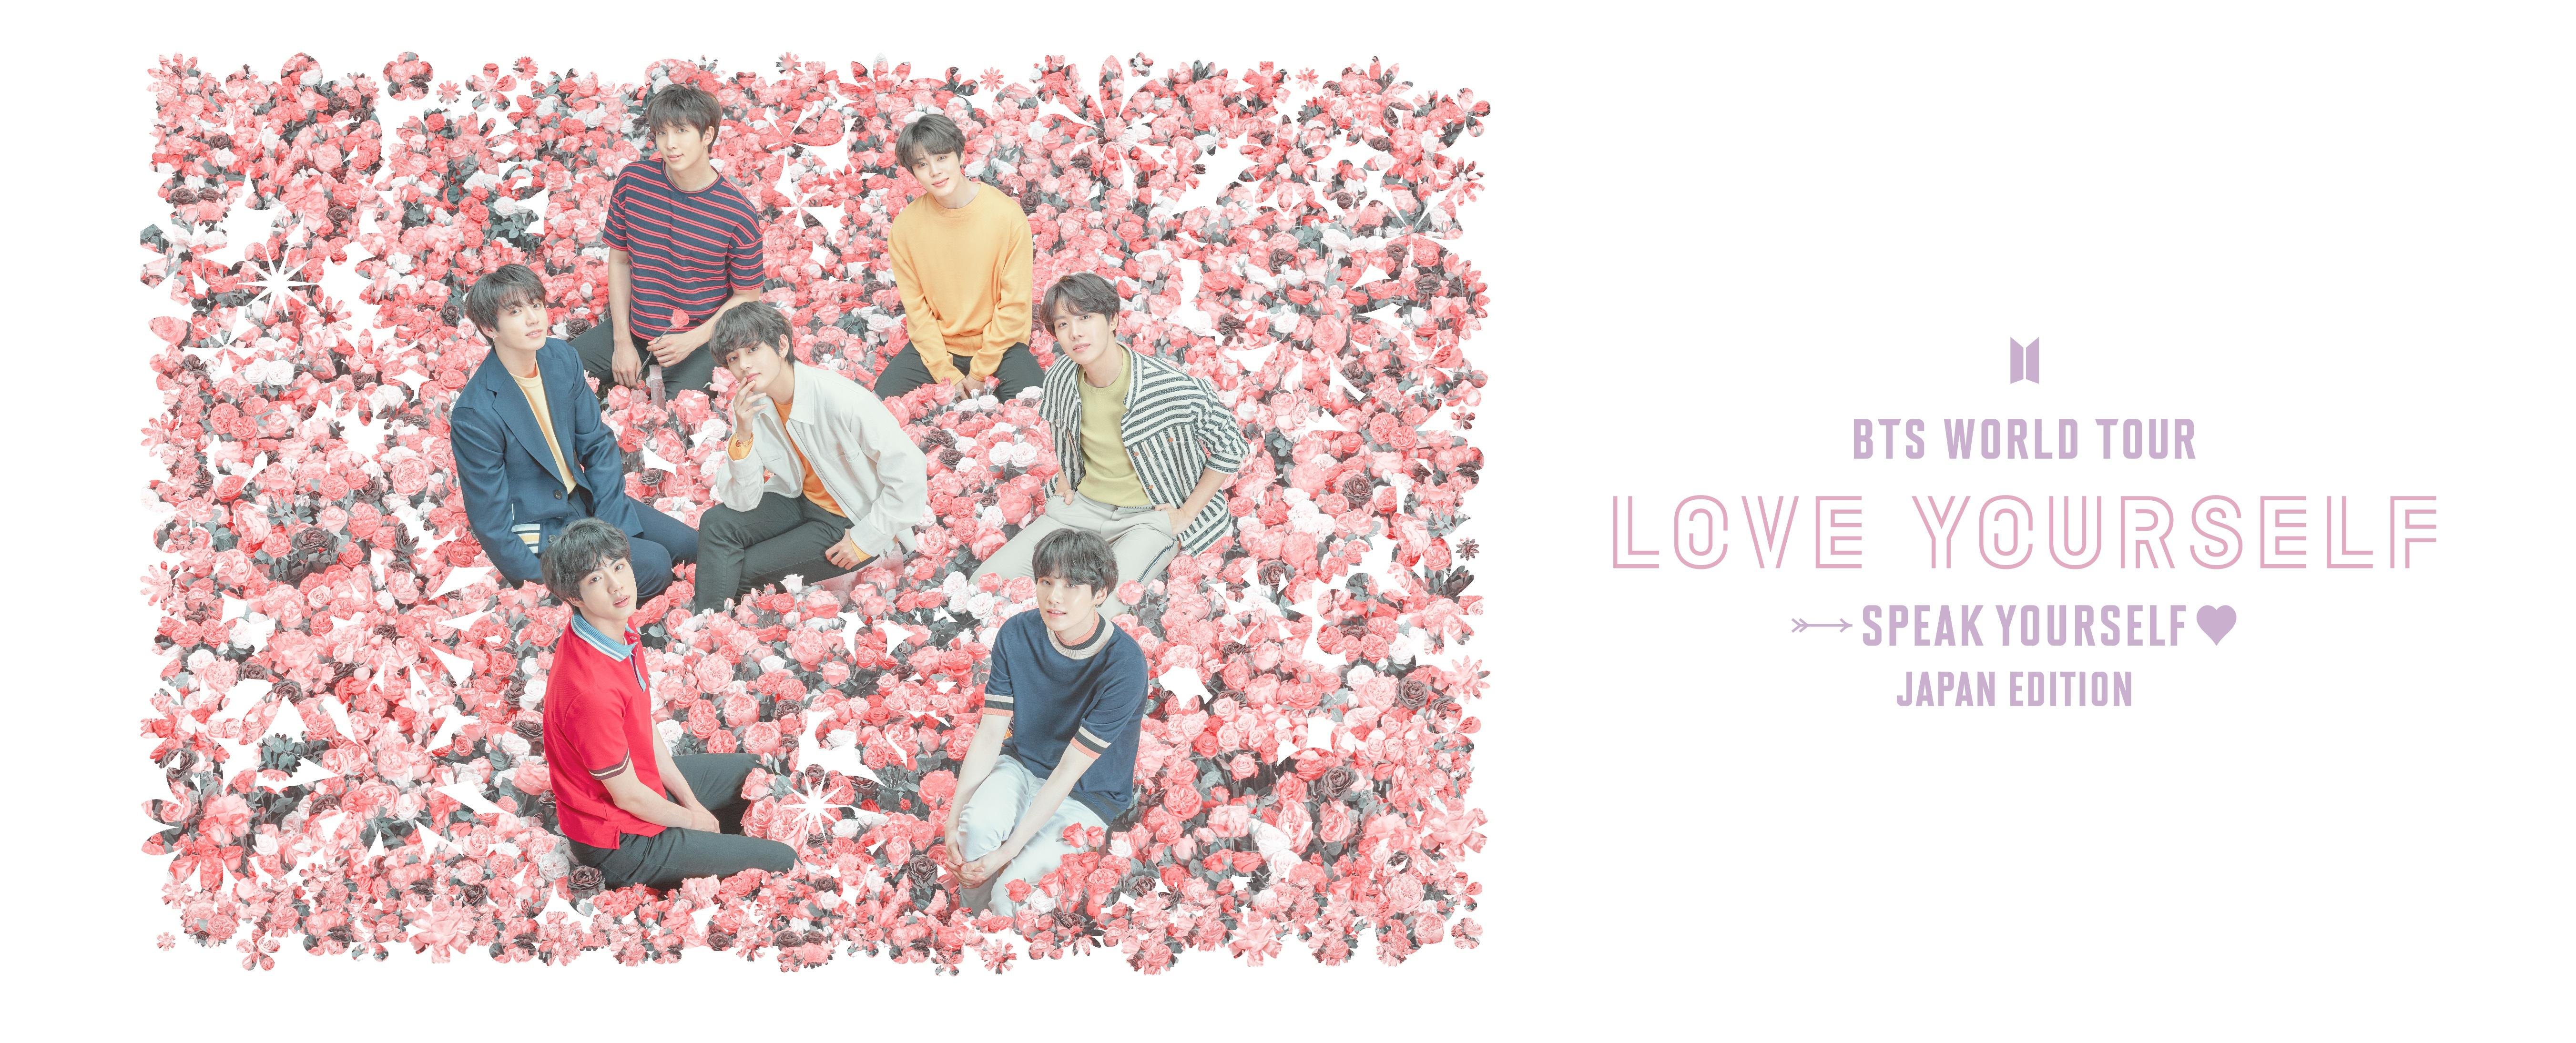 BTS WORLD TOUR 'LOVE YOURSELF: SPEAK YOURSELF' – JAPAN EDITION